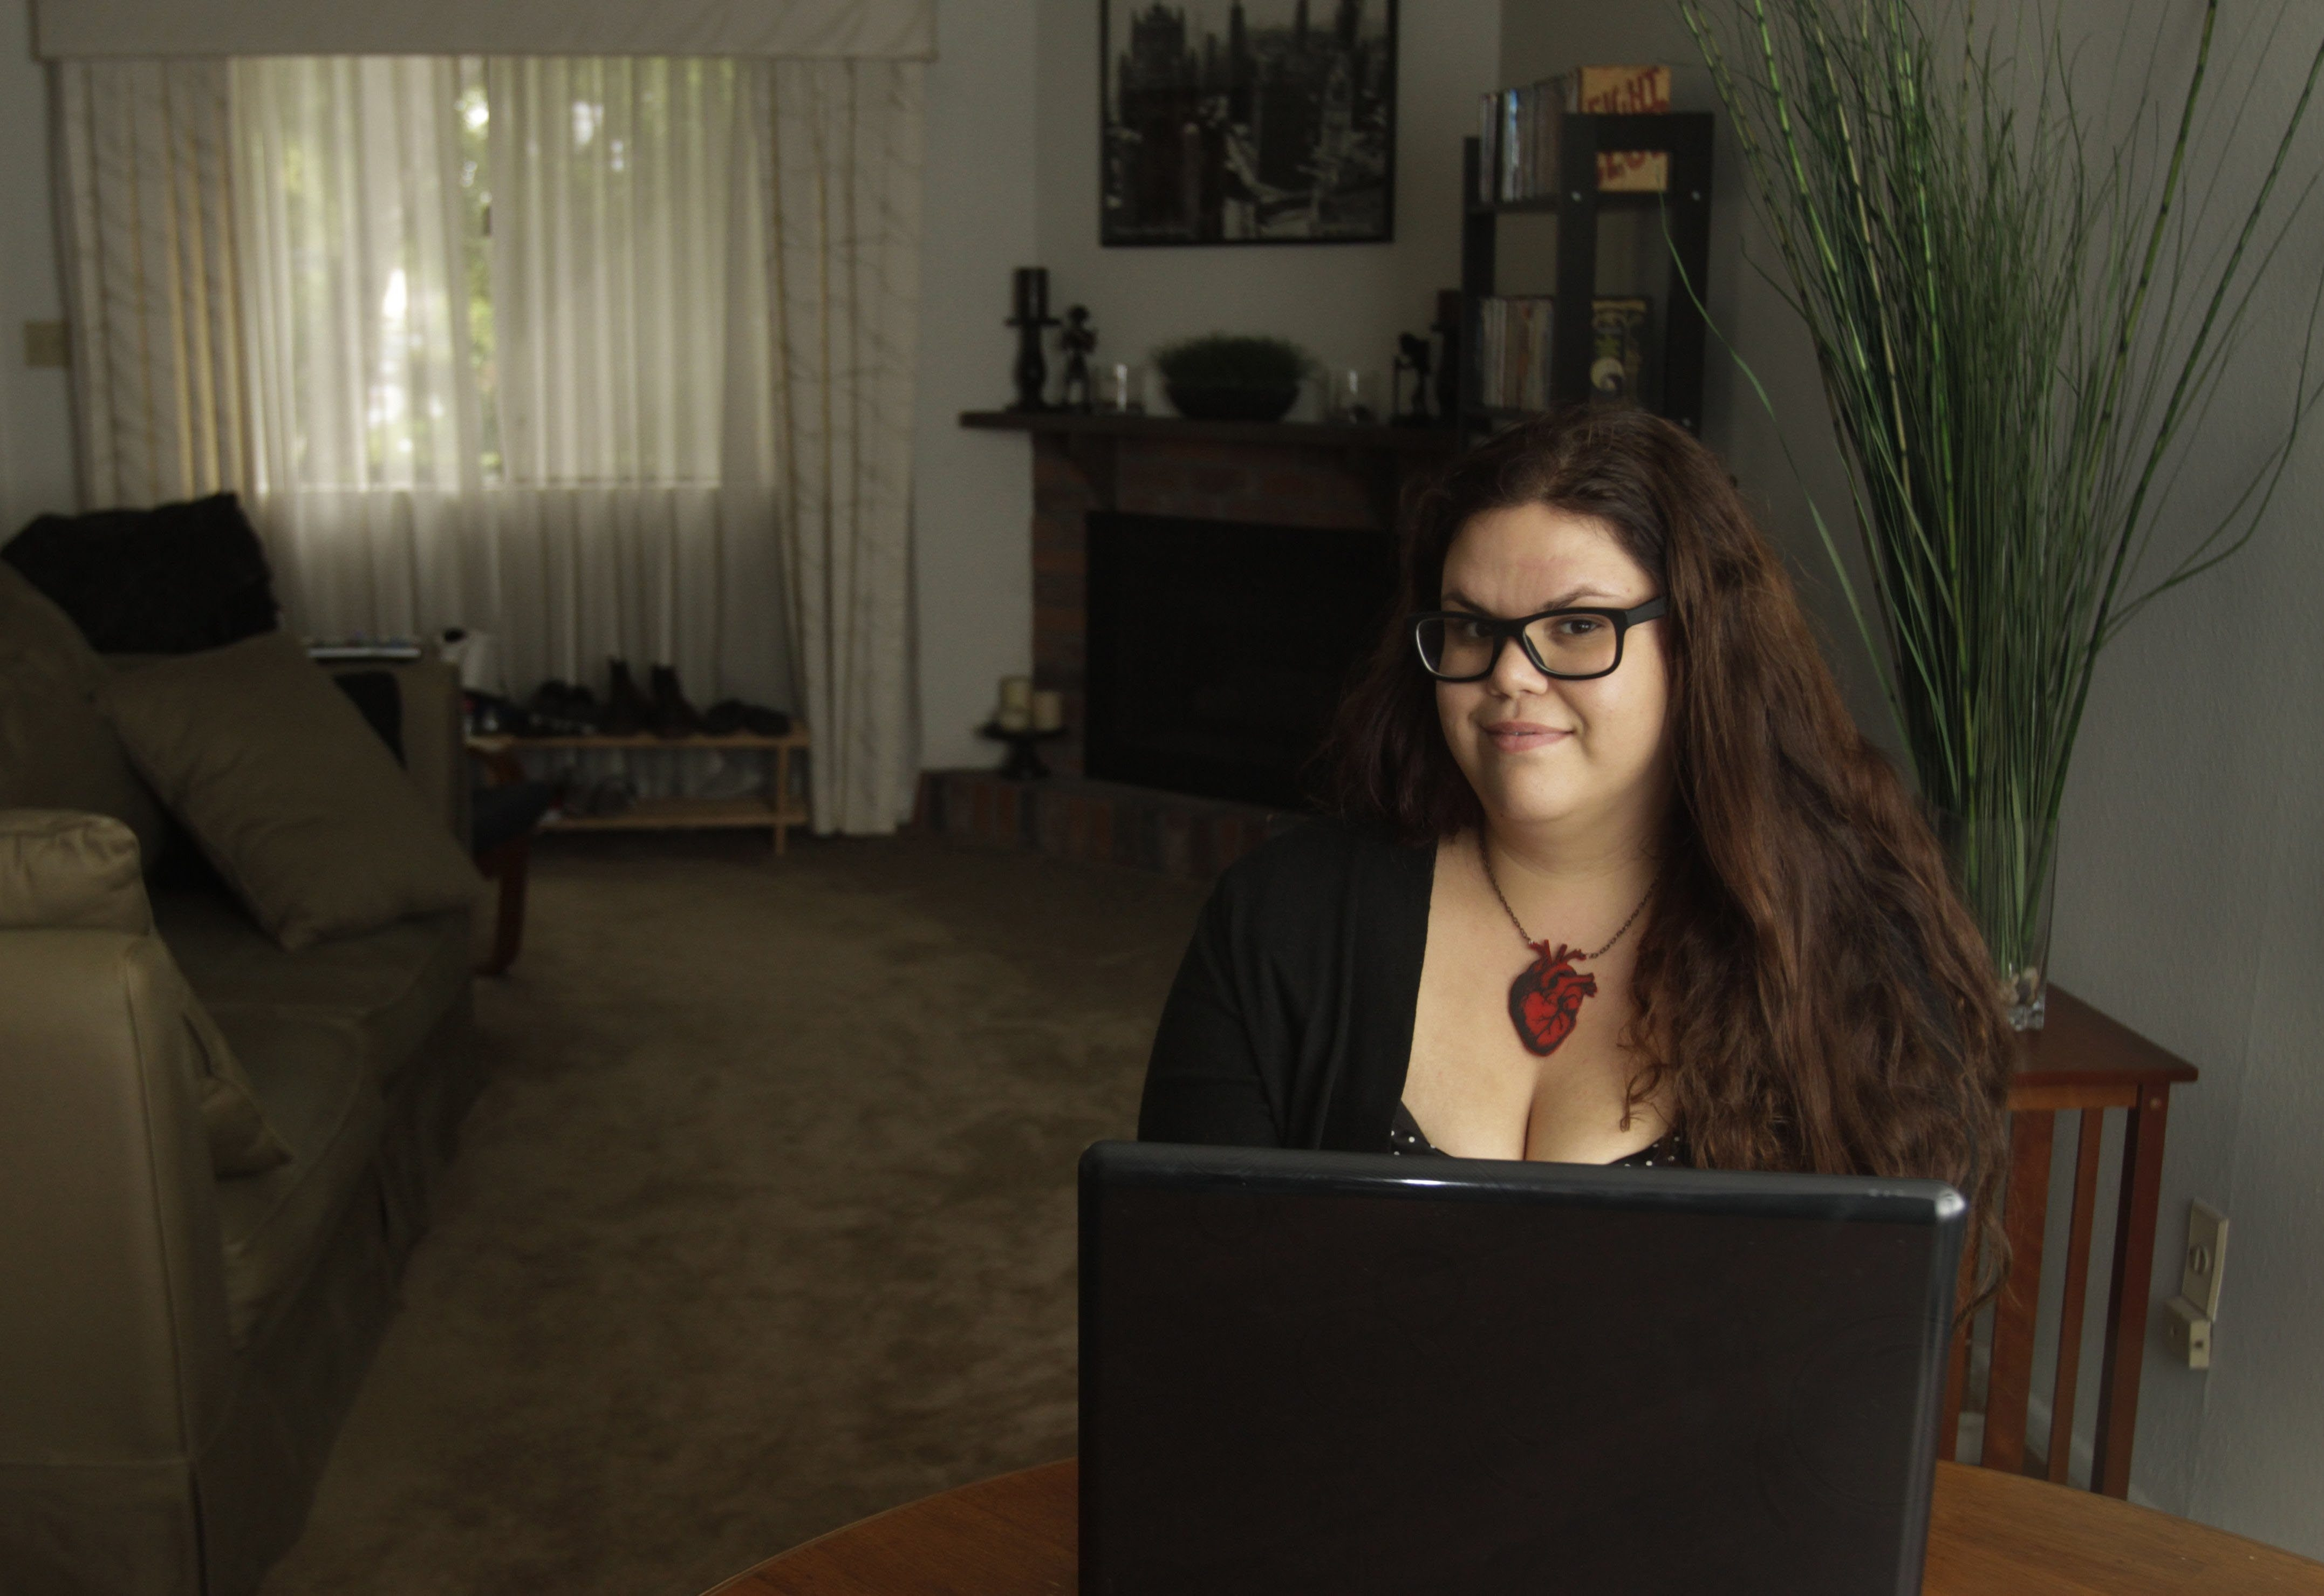 Sarah Luna graduated from the University of Southern California with about $75,000 in student-loan debt. She currently lives in an apartment in Glendale, Calif., and would like to buy a home, but she knows her student debt will keep that dream somewhere down the road.